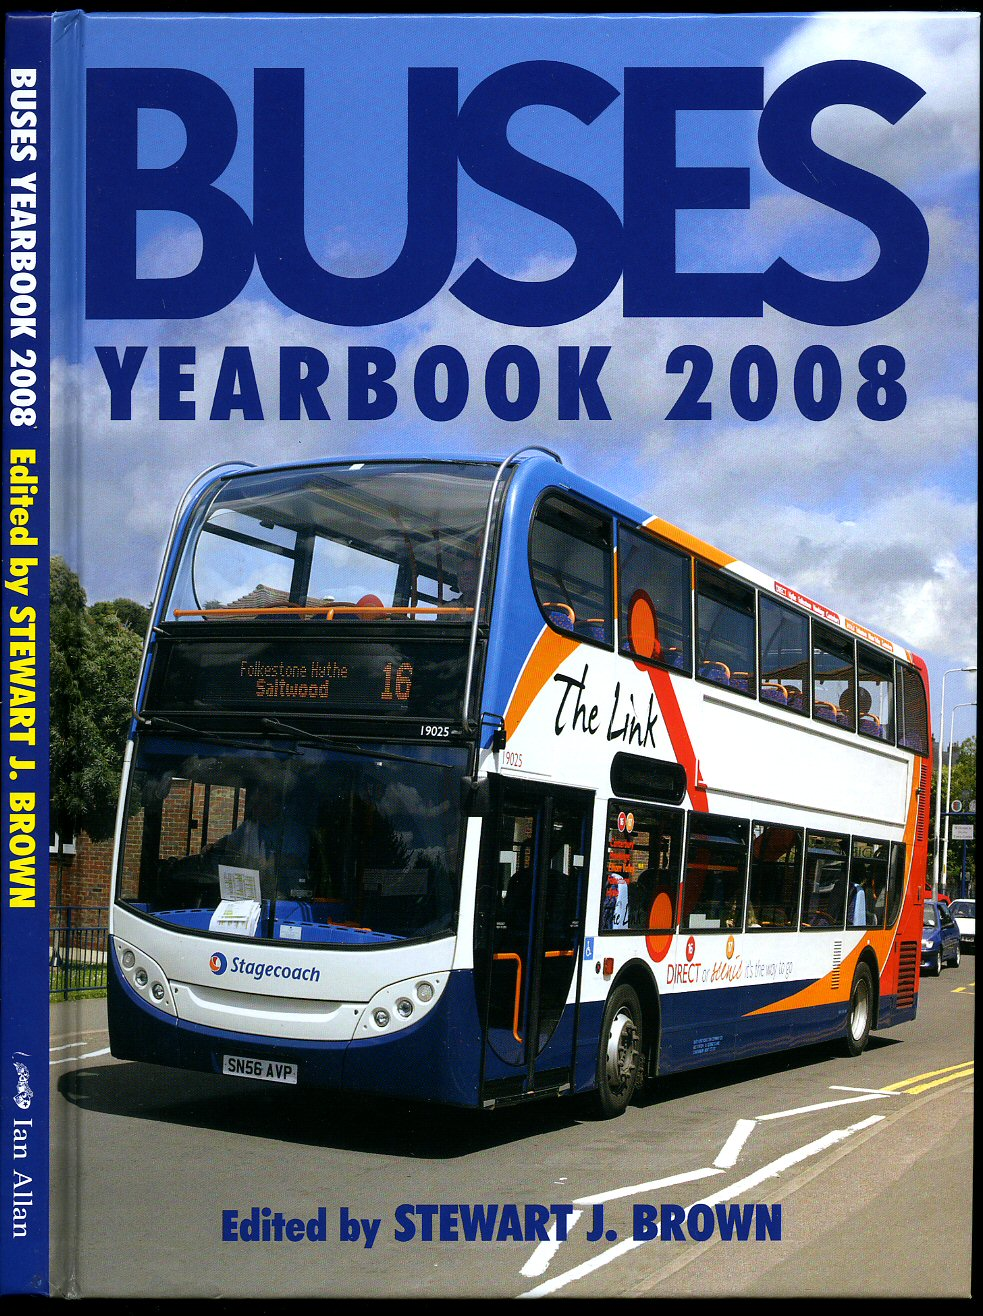 BROWN, STEWART J. [EDITED BY] - Buses Annual Yearbook (Year Book) 2008